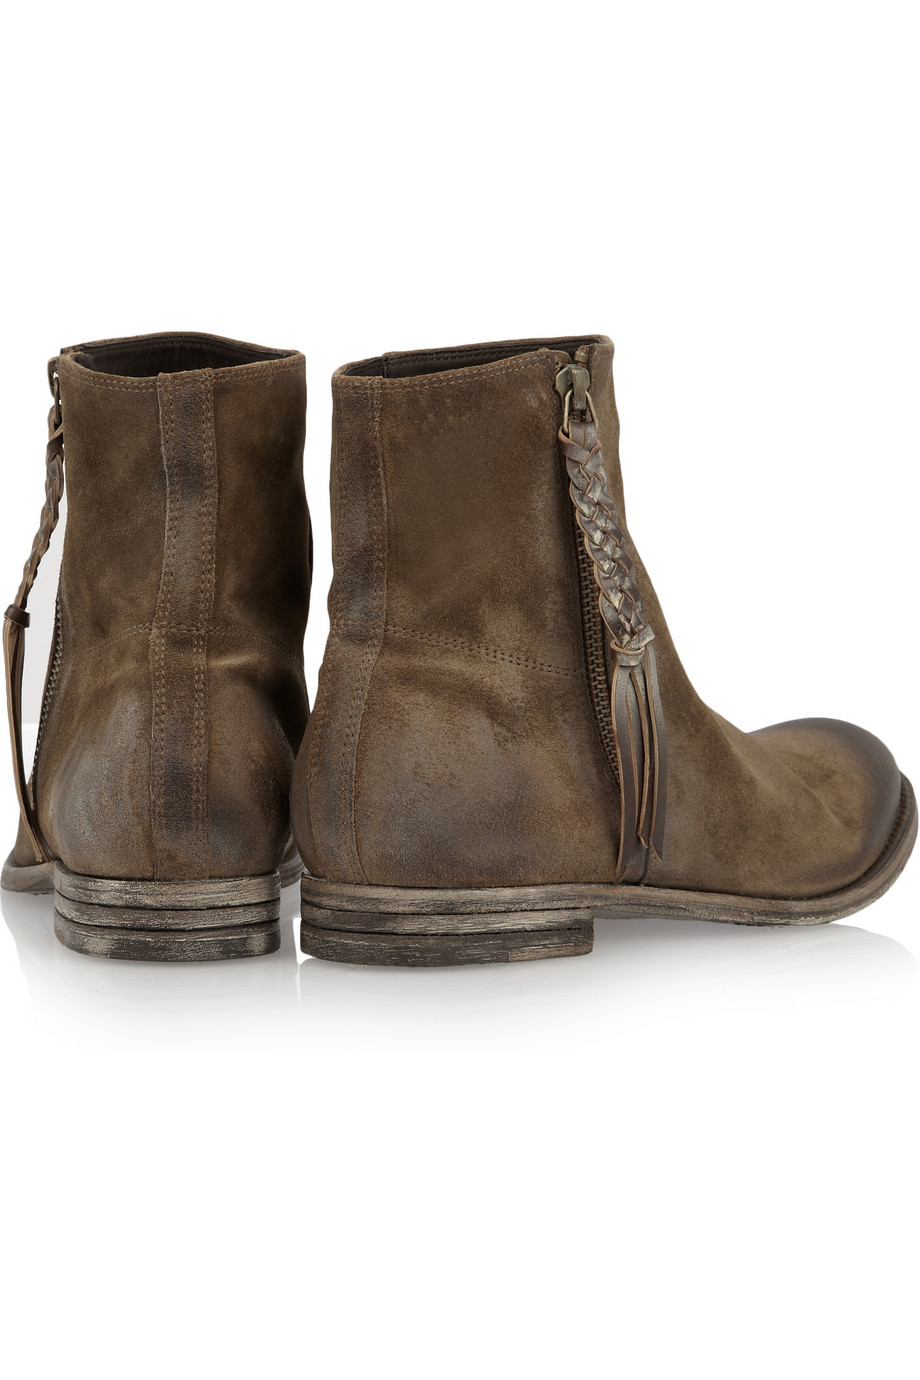 NDC Genna Brushedleather Boots in Chocolate (Brown)